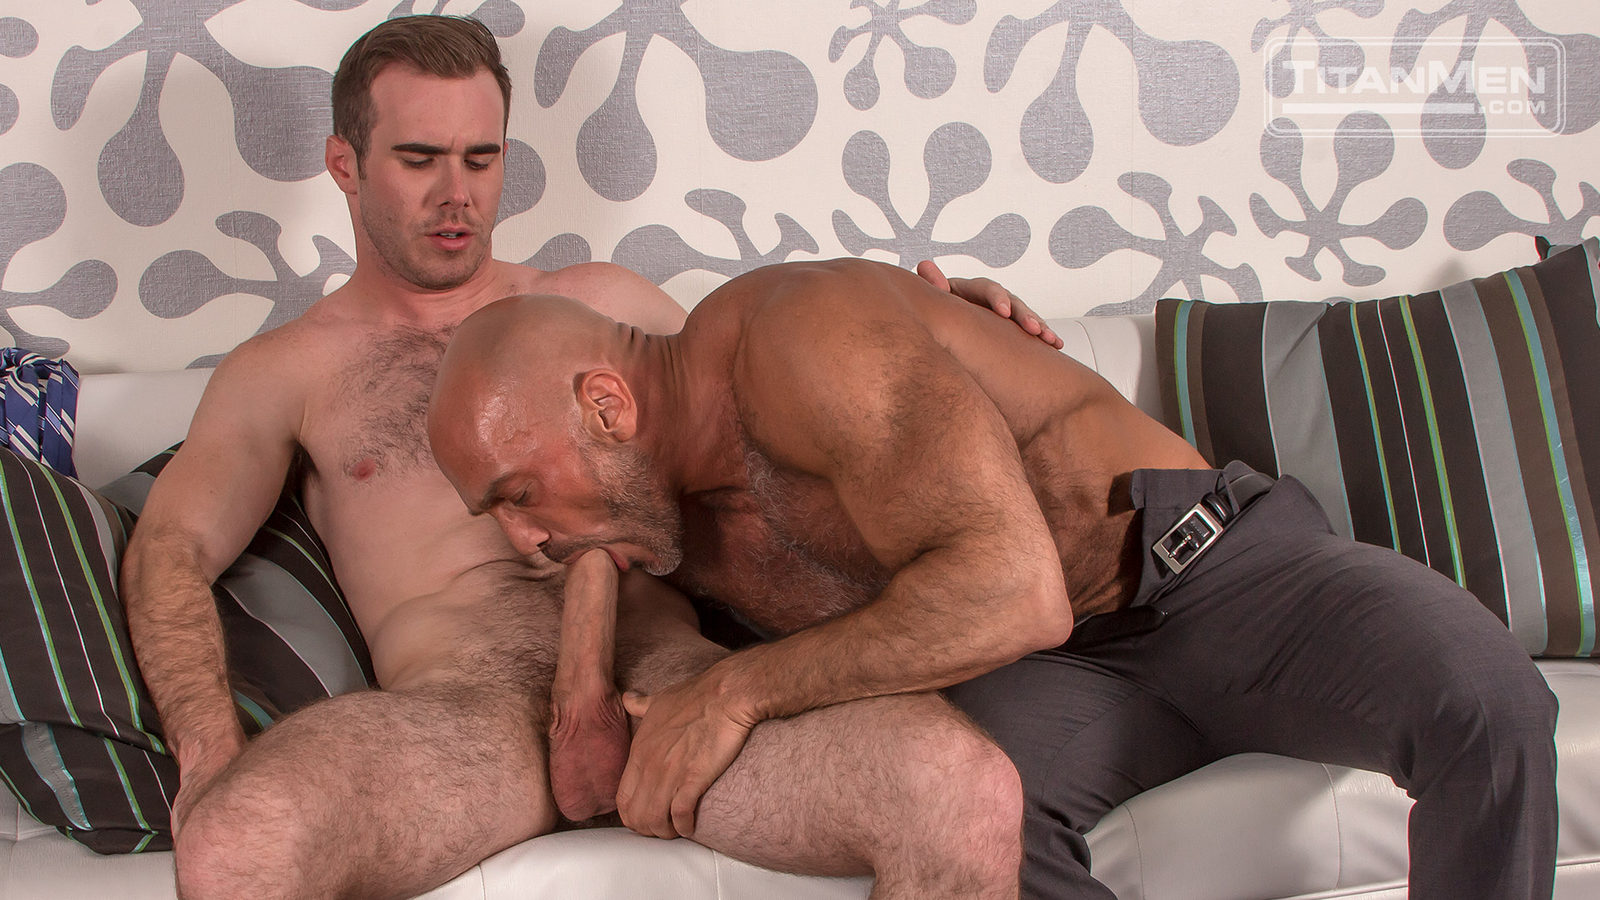 Daddy And Son Gay Audio Taboo Stories